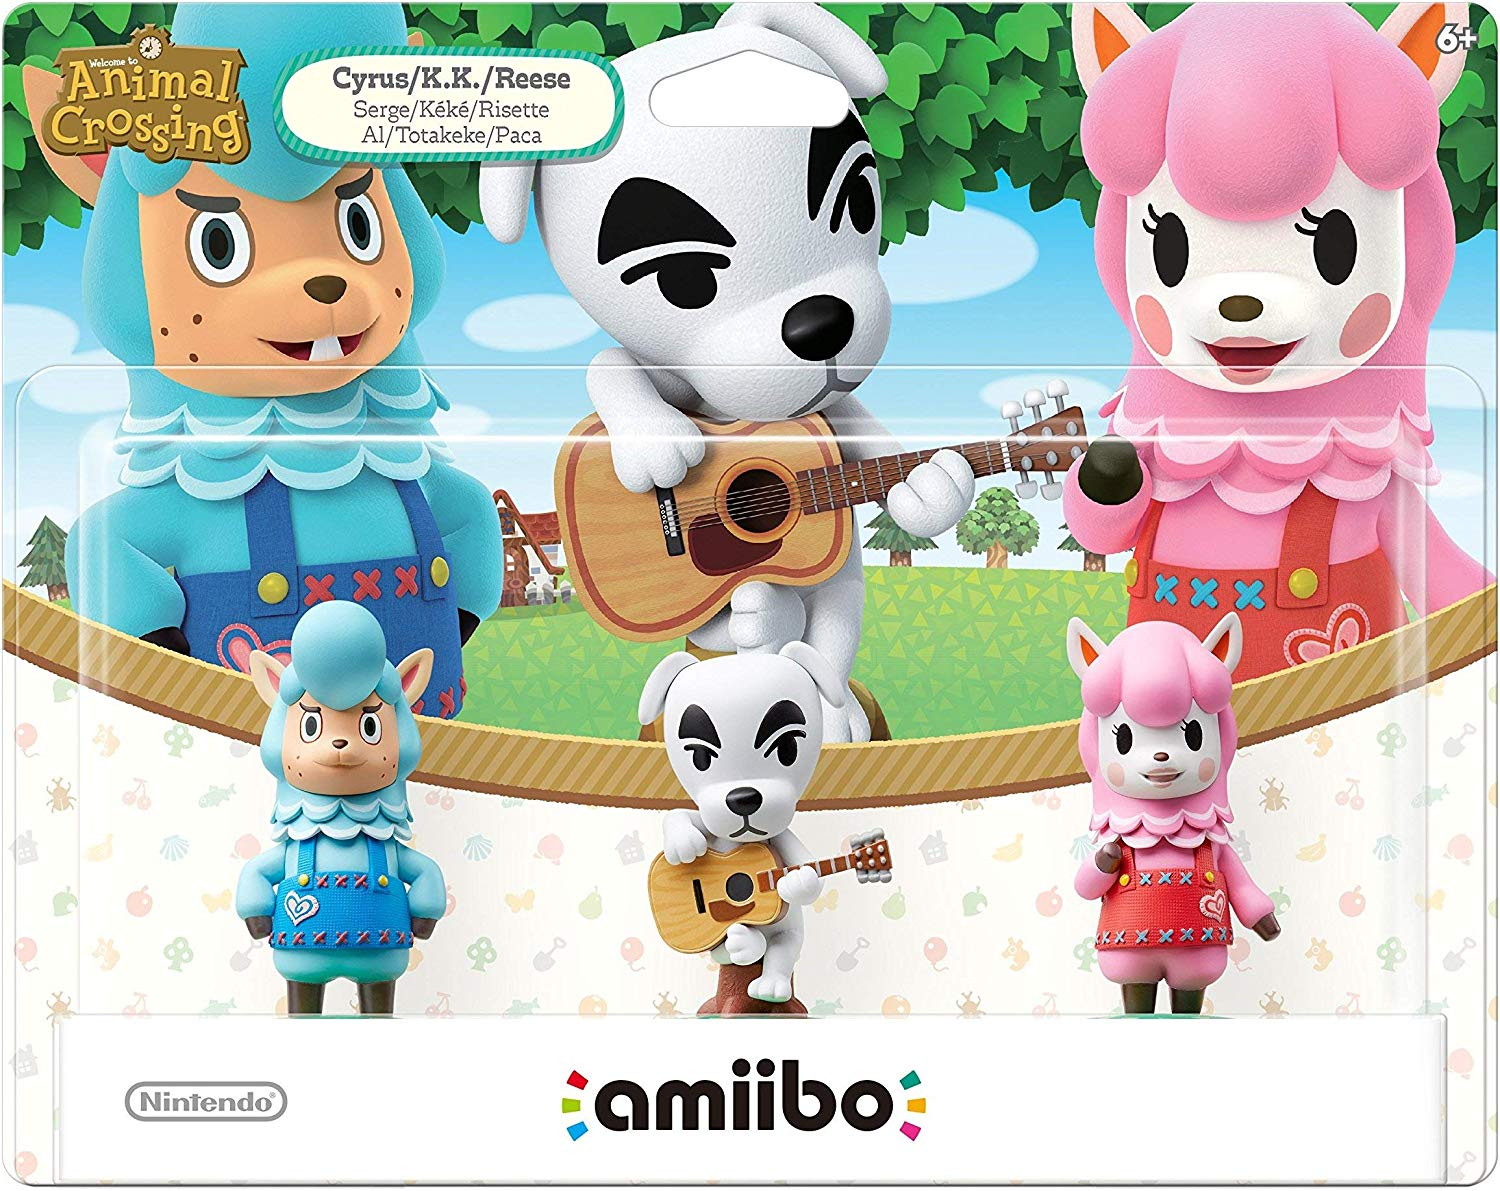 Cyrus/K.K./Reese 3-Pack Amiibo (Animal Crossing Series)